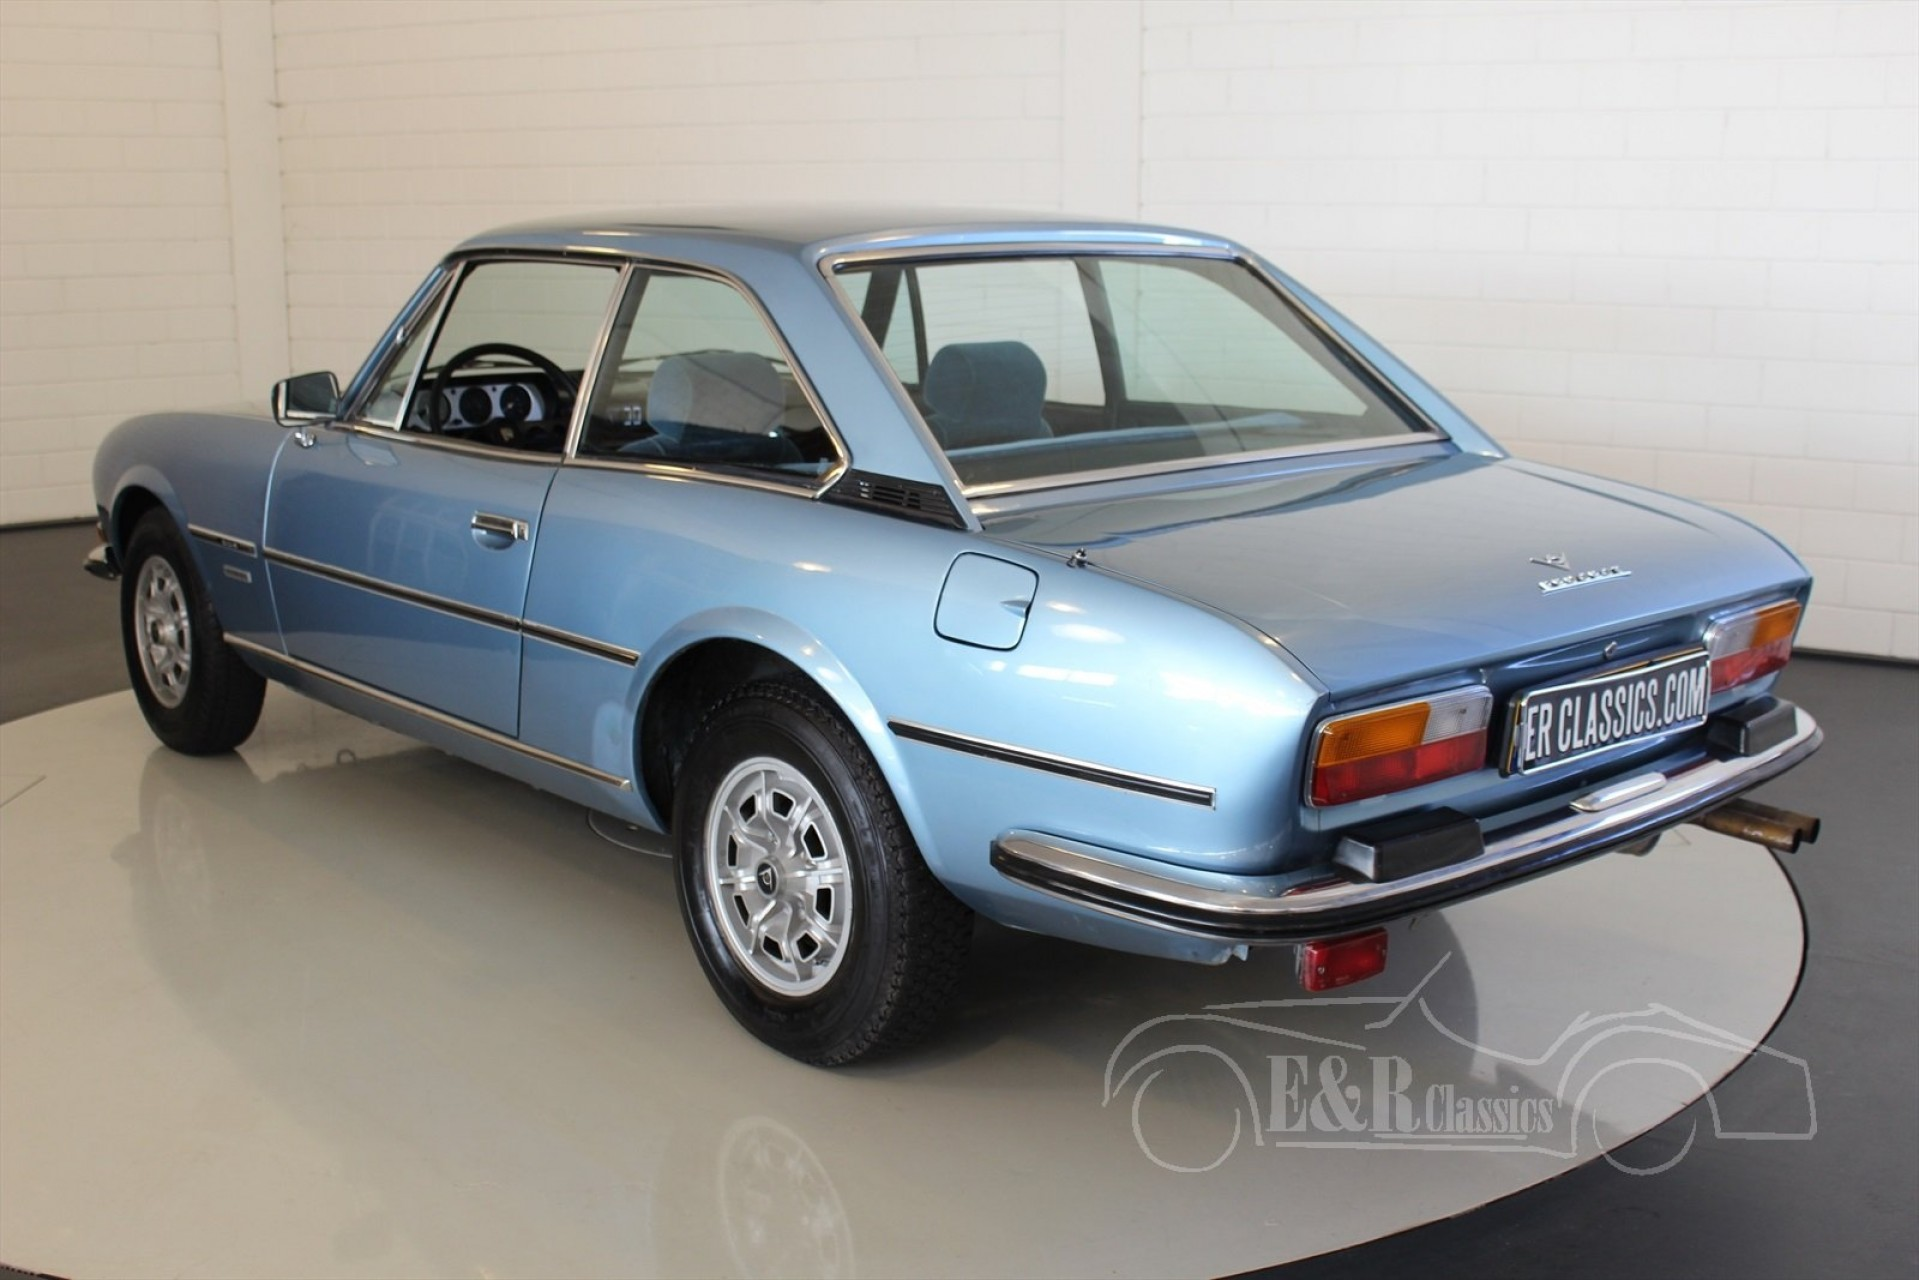 Peugeot 504 Coupe 1978 For Sale At Erclassics